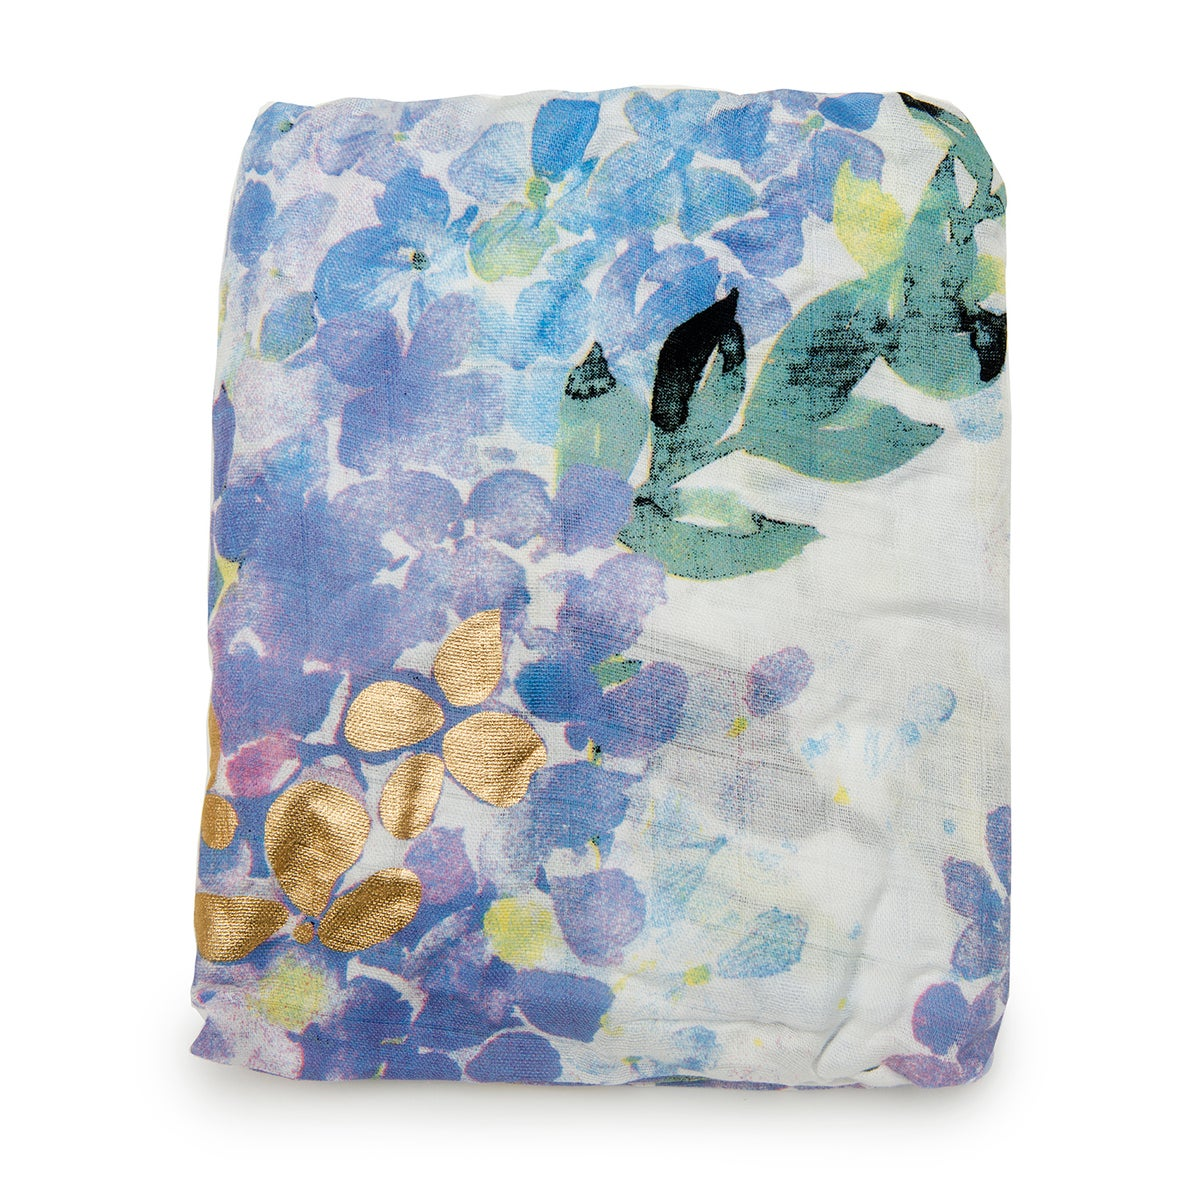 Image of LOU LOU LOLLIPOP HYDRANGEA CRIB SHEET